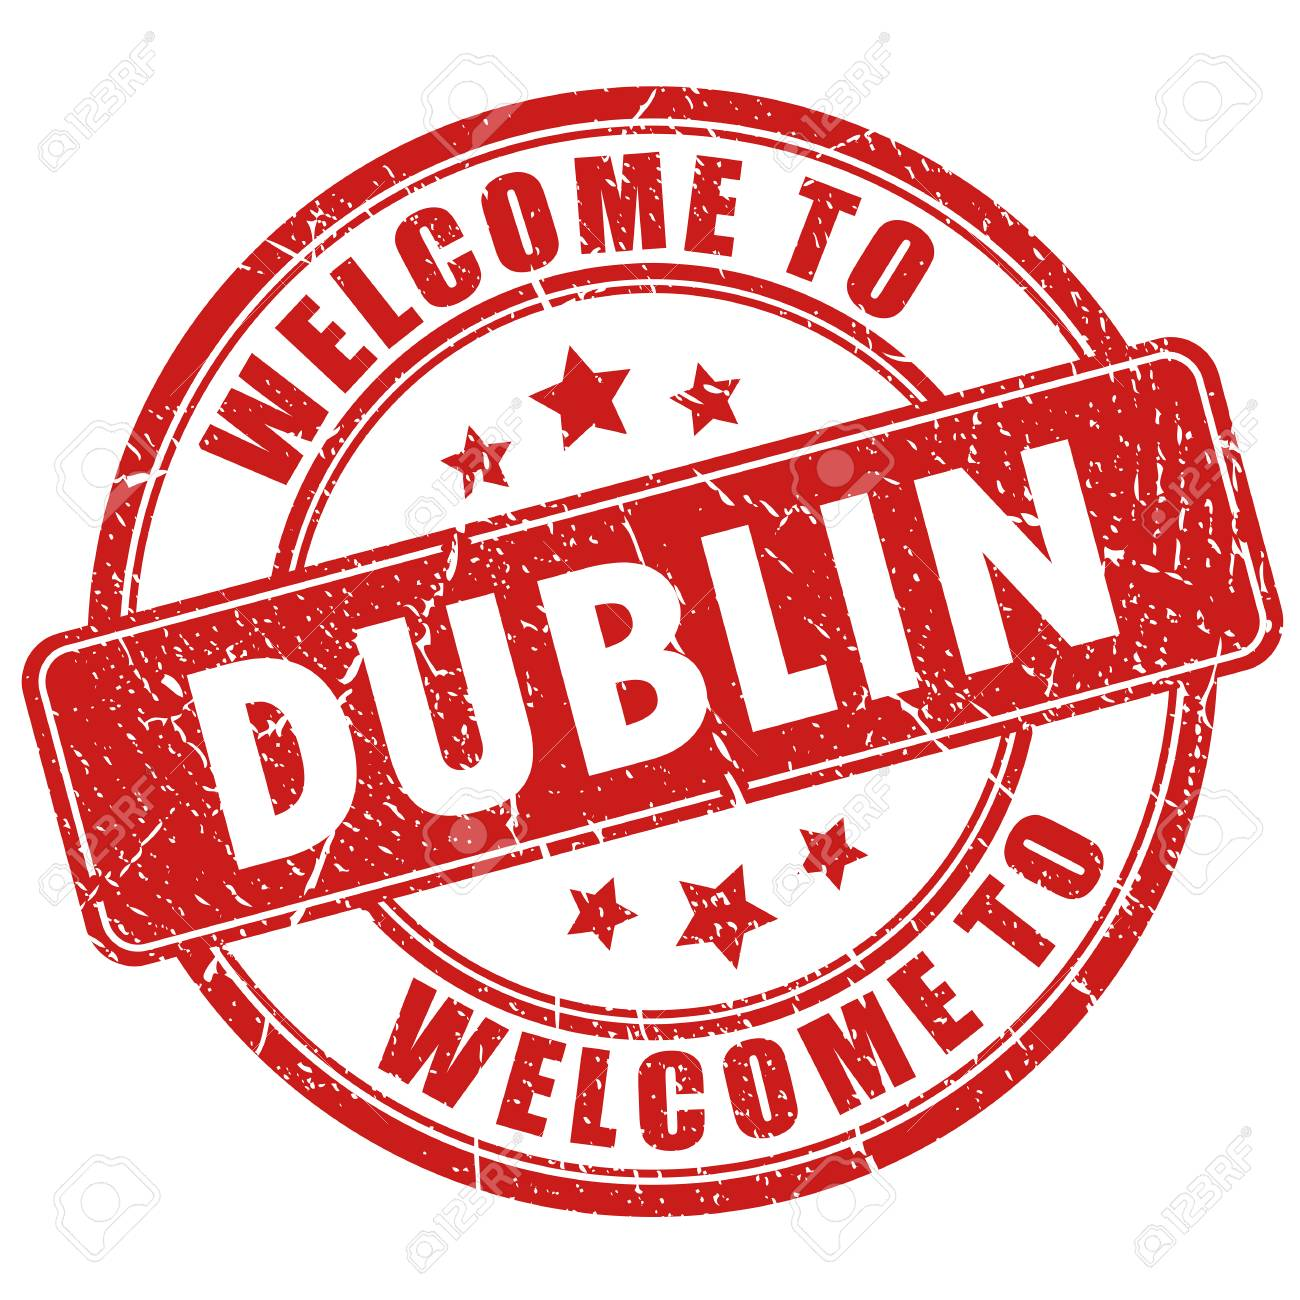 Welcome to Dublin vector stamp isolated on white background - 121012801